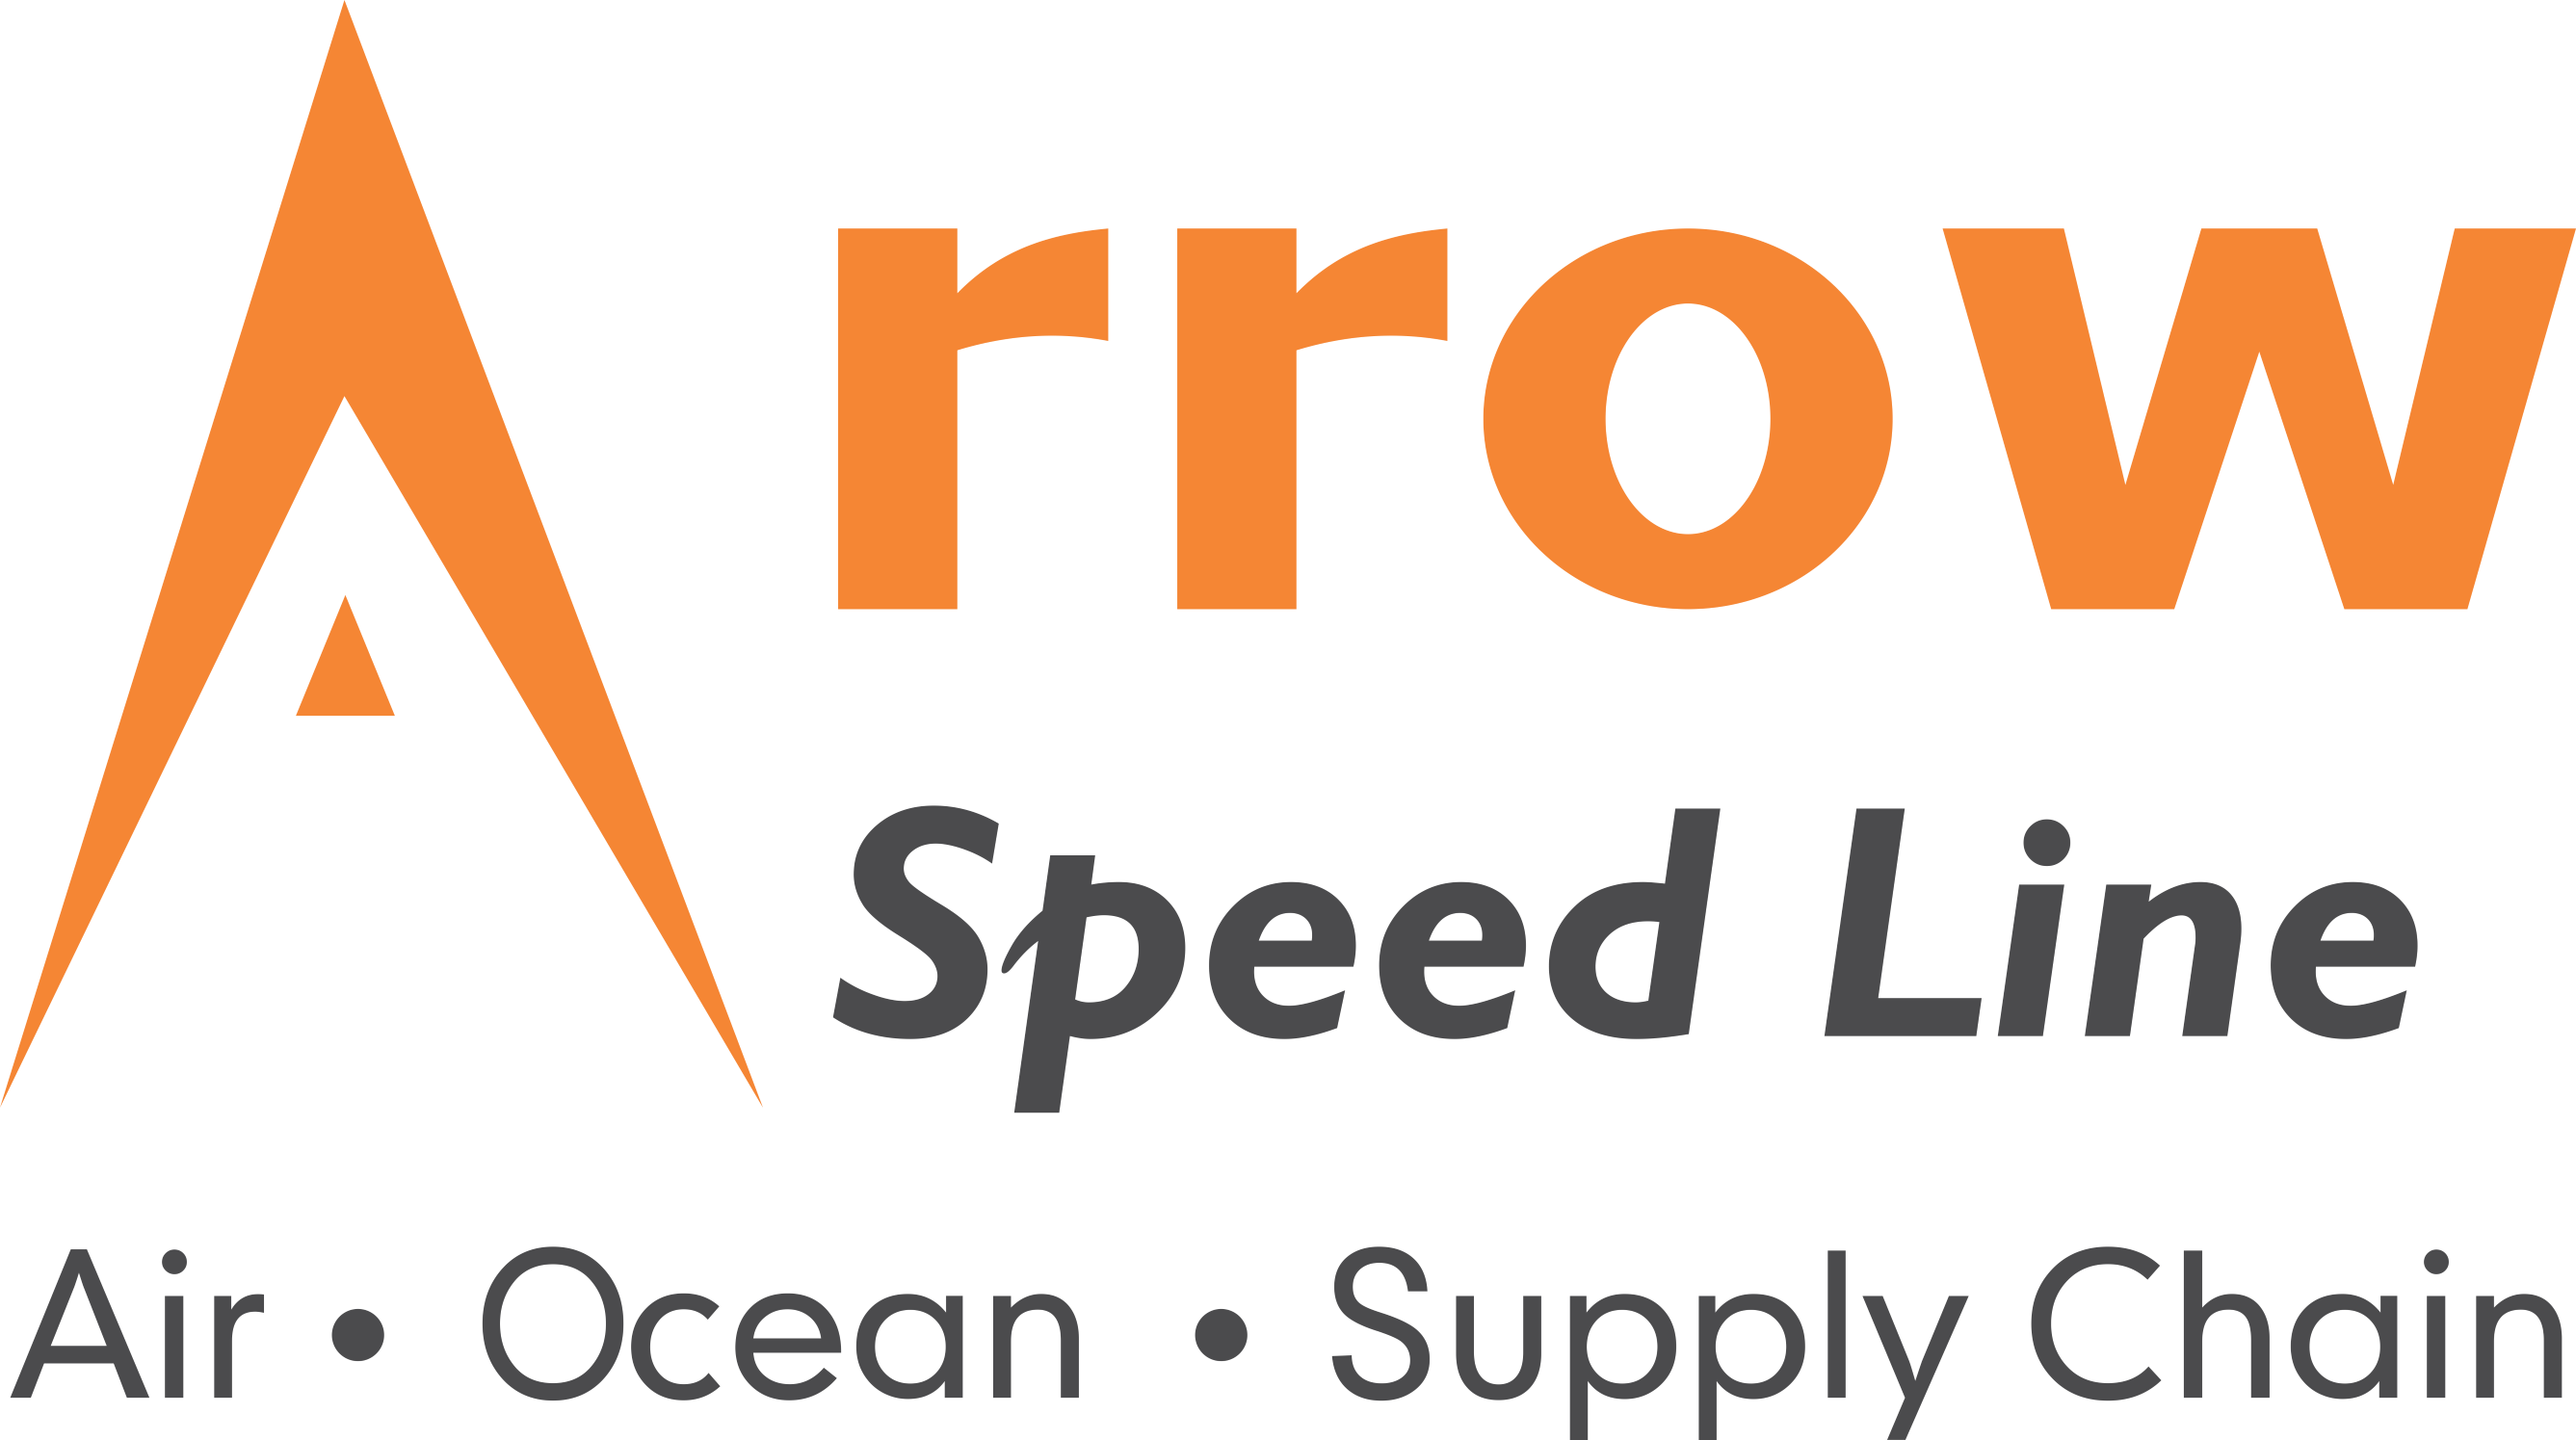 Arrow Speed Line